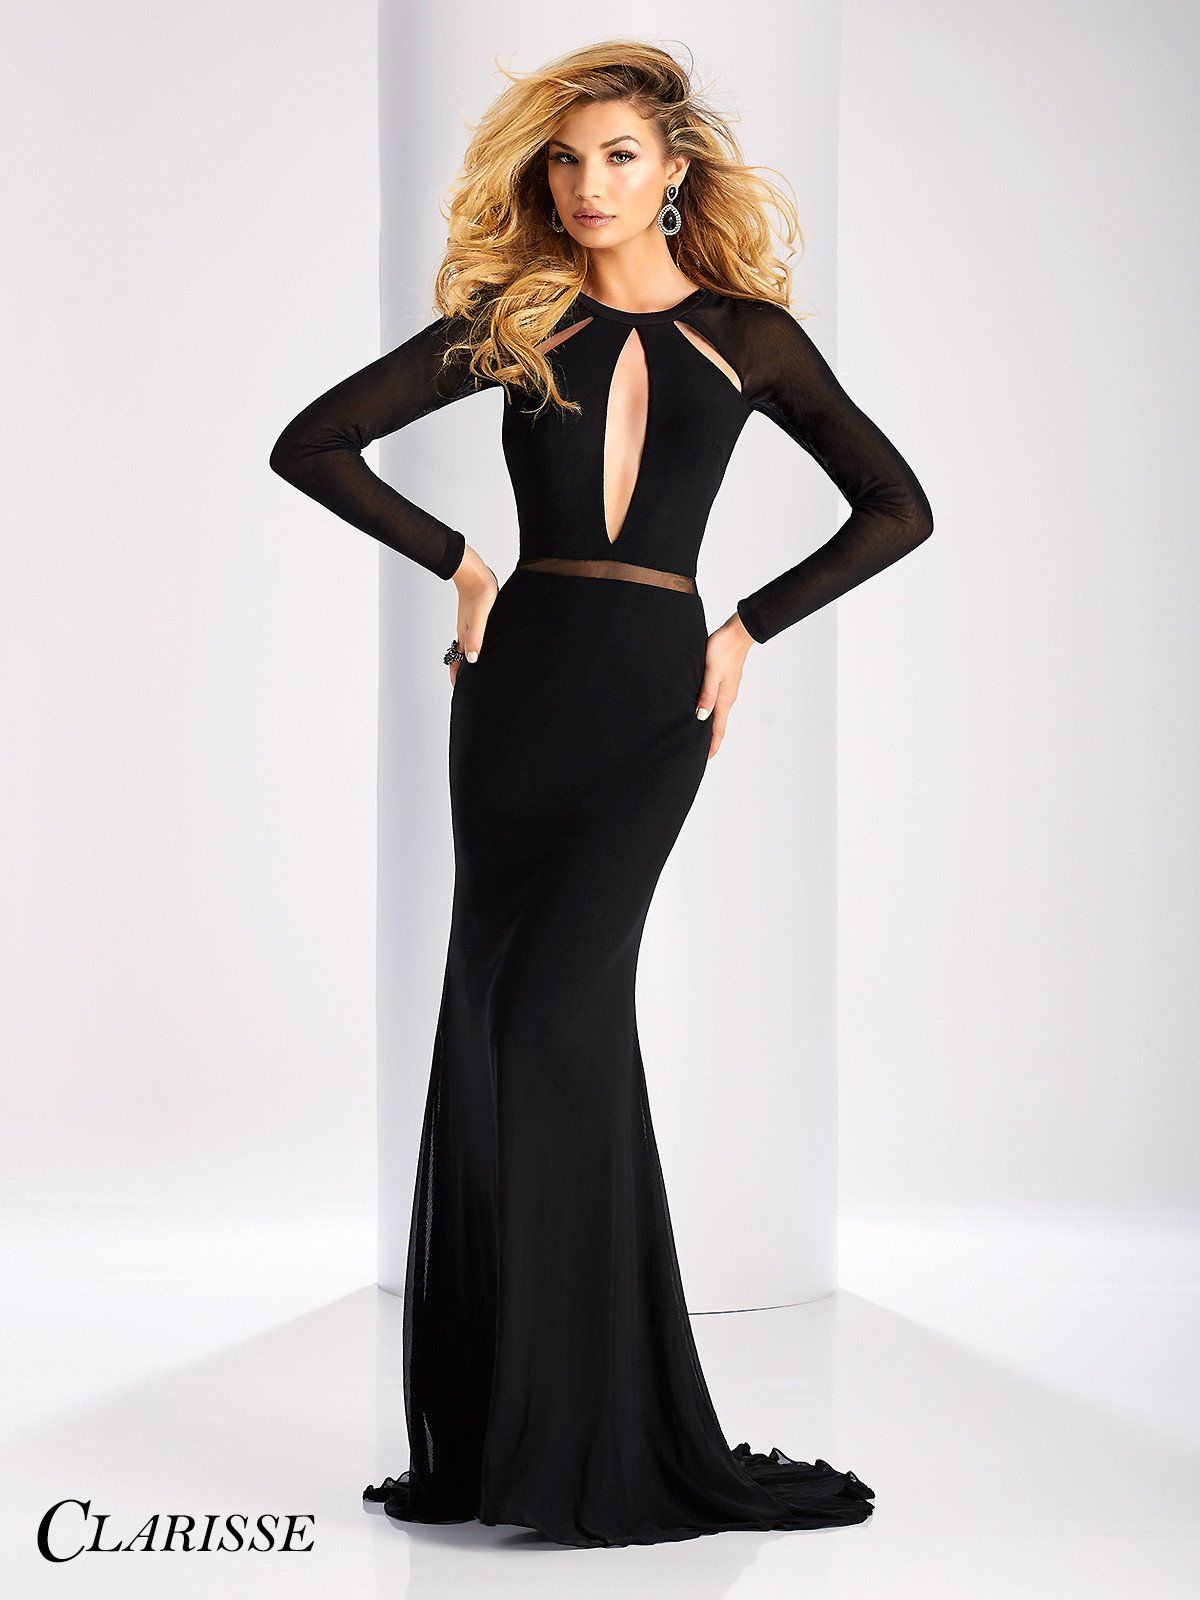 Clarisse prom black long sleeved open back prom dress prom